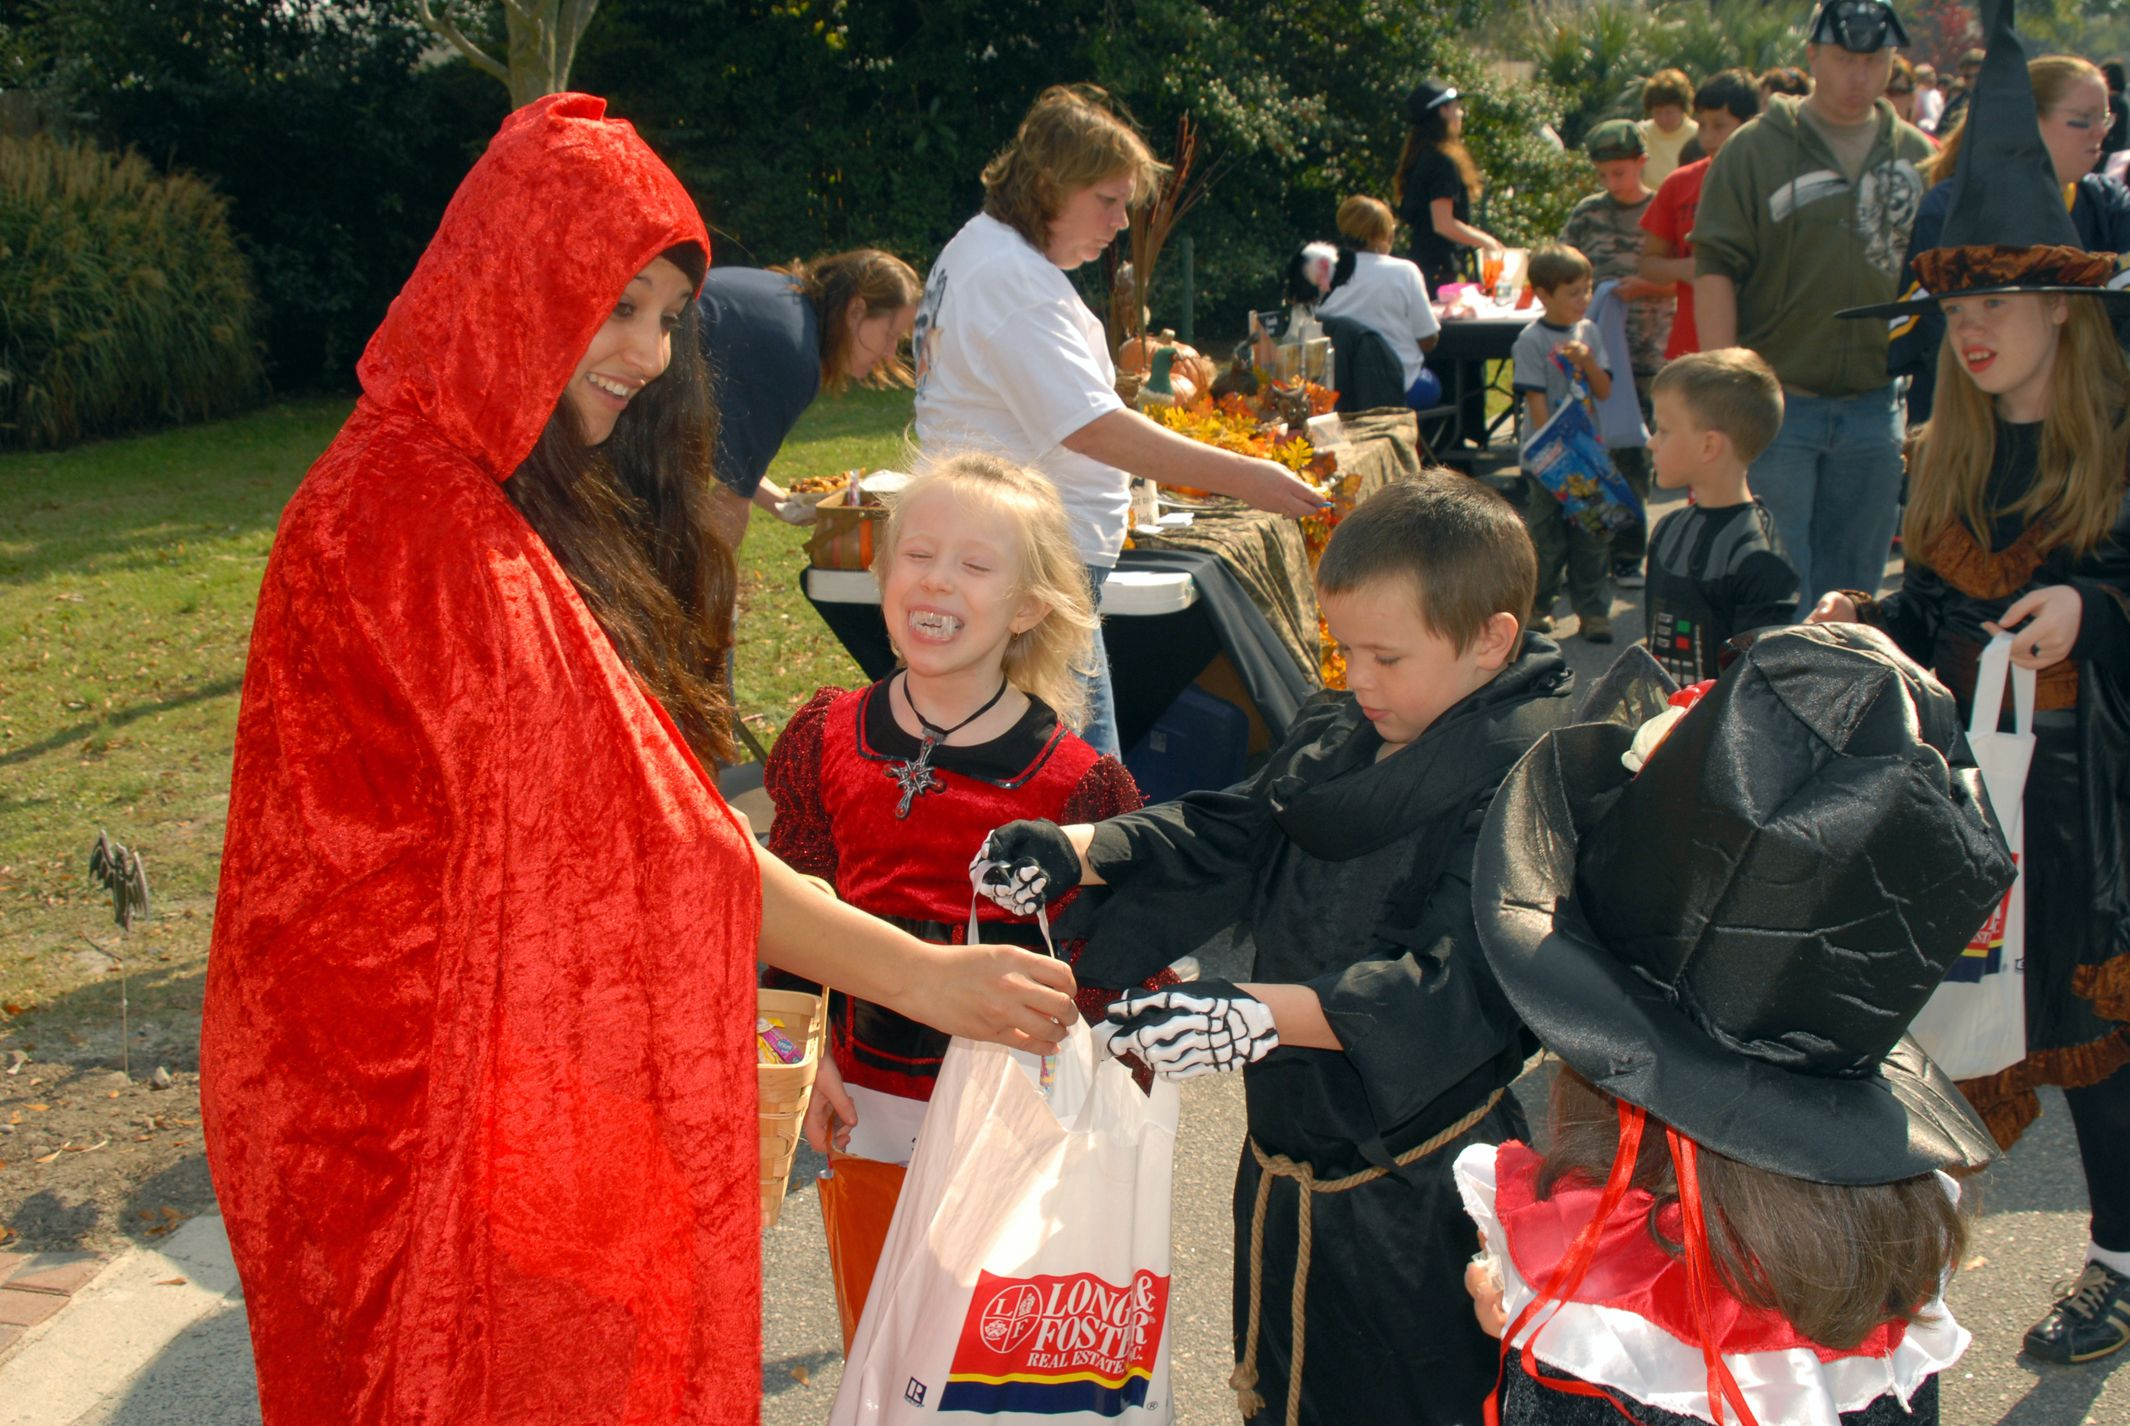 Trick or Treat!  It's that time of year again and we all know how much kids and adults love candy! Make sure you and the kids eat a healthy meal before heading out to collect candy! #Halloween